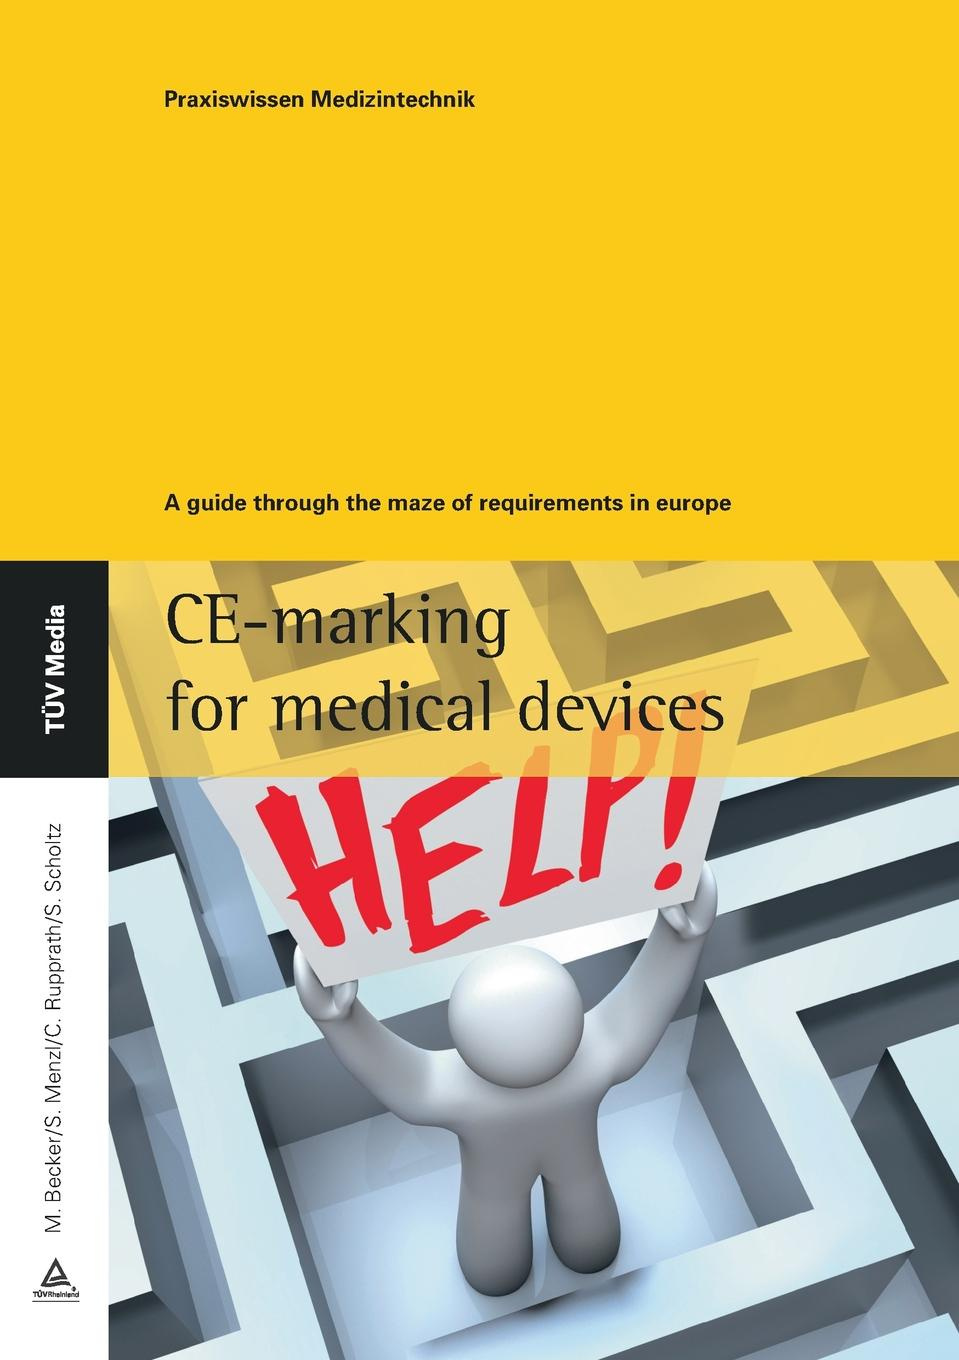 Sibylle Scholtz, Myriam Becker, Stefan Menzl CE-Marking rahul singh medical devices surgical and image guided technologies